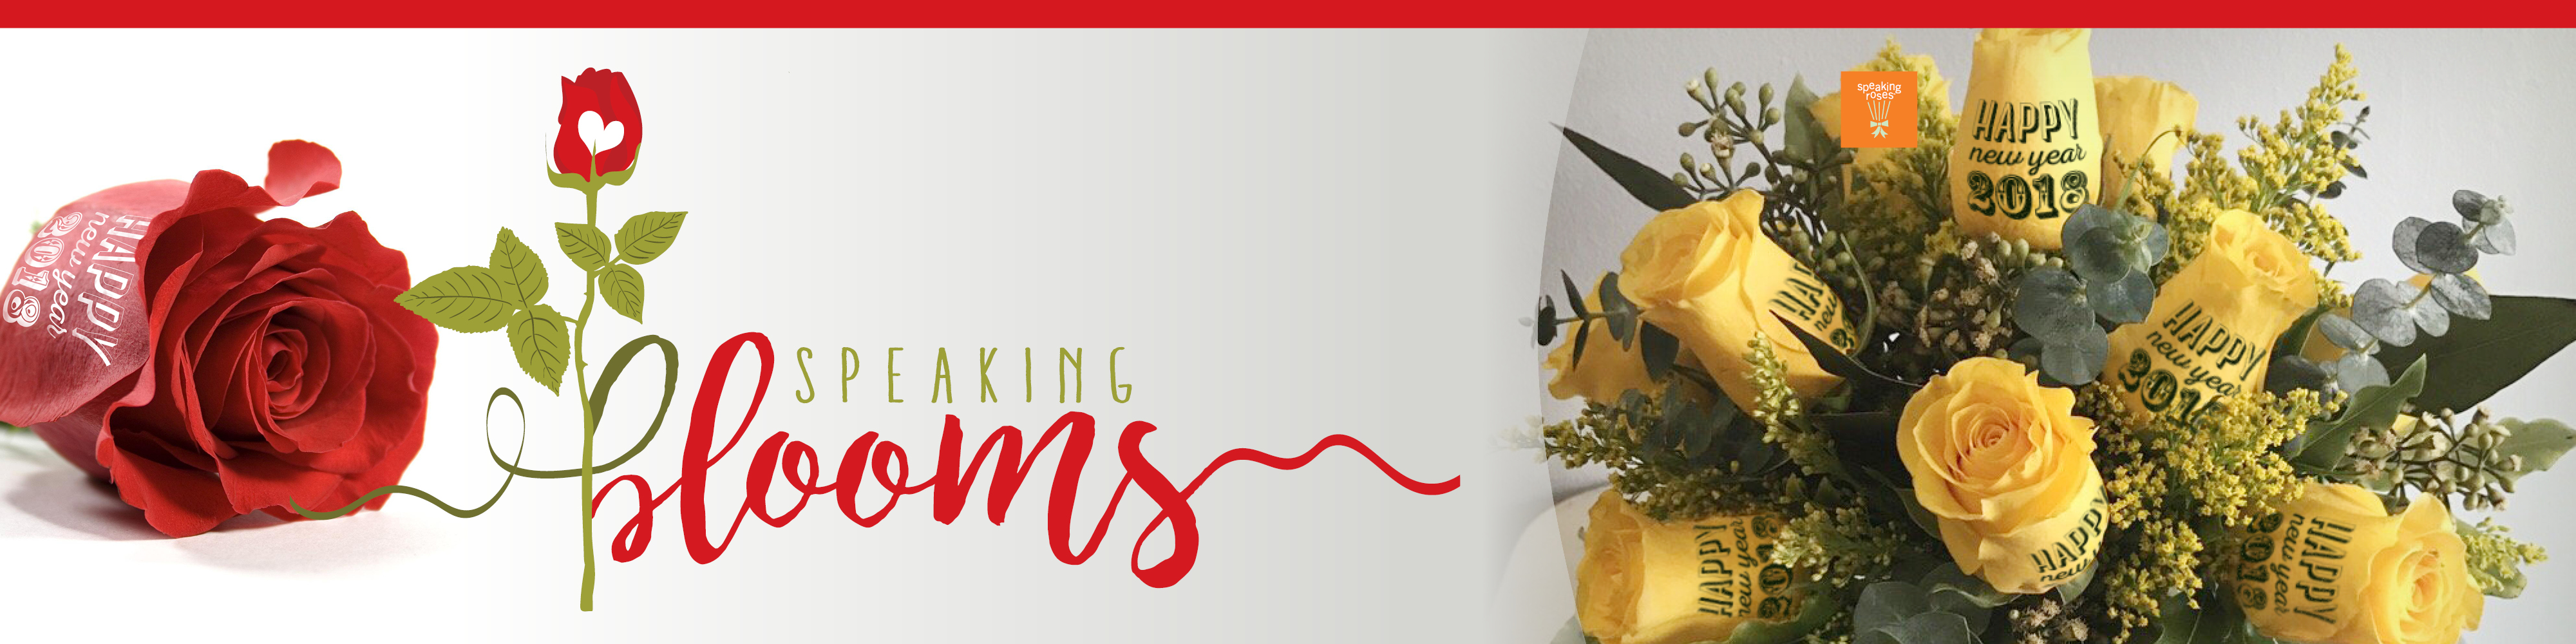 Speakingblooms.com An official representative of Speaking Roses International